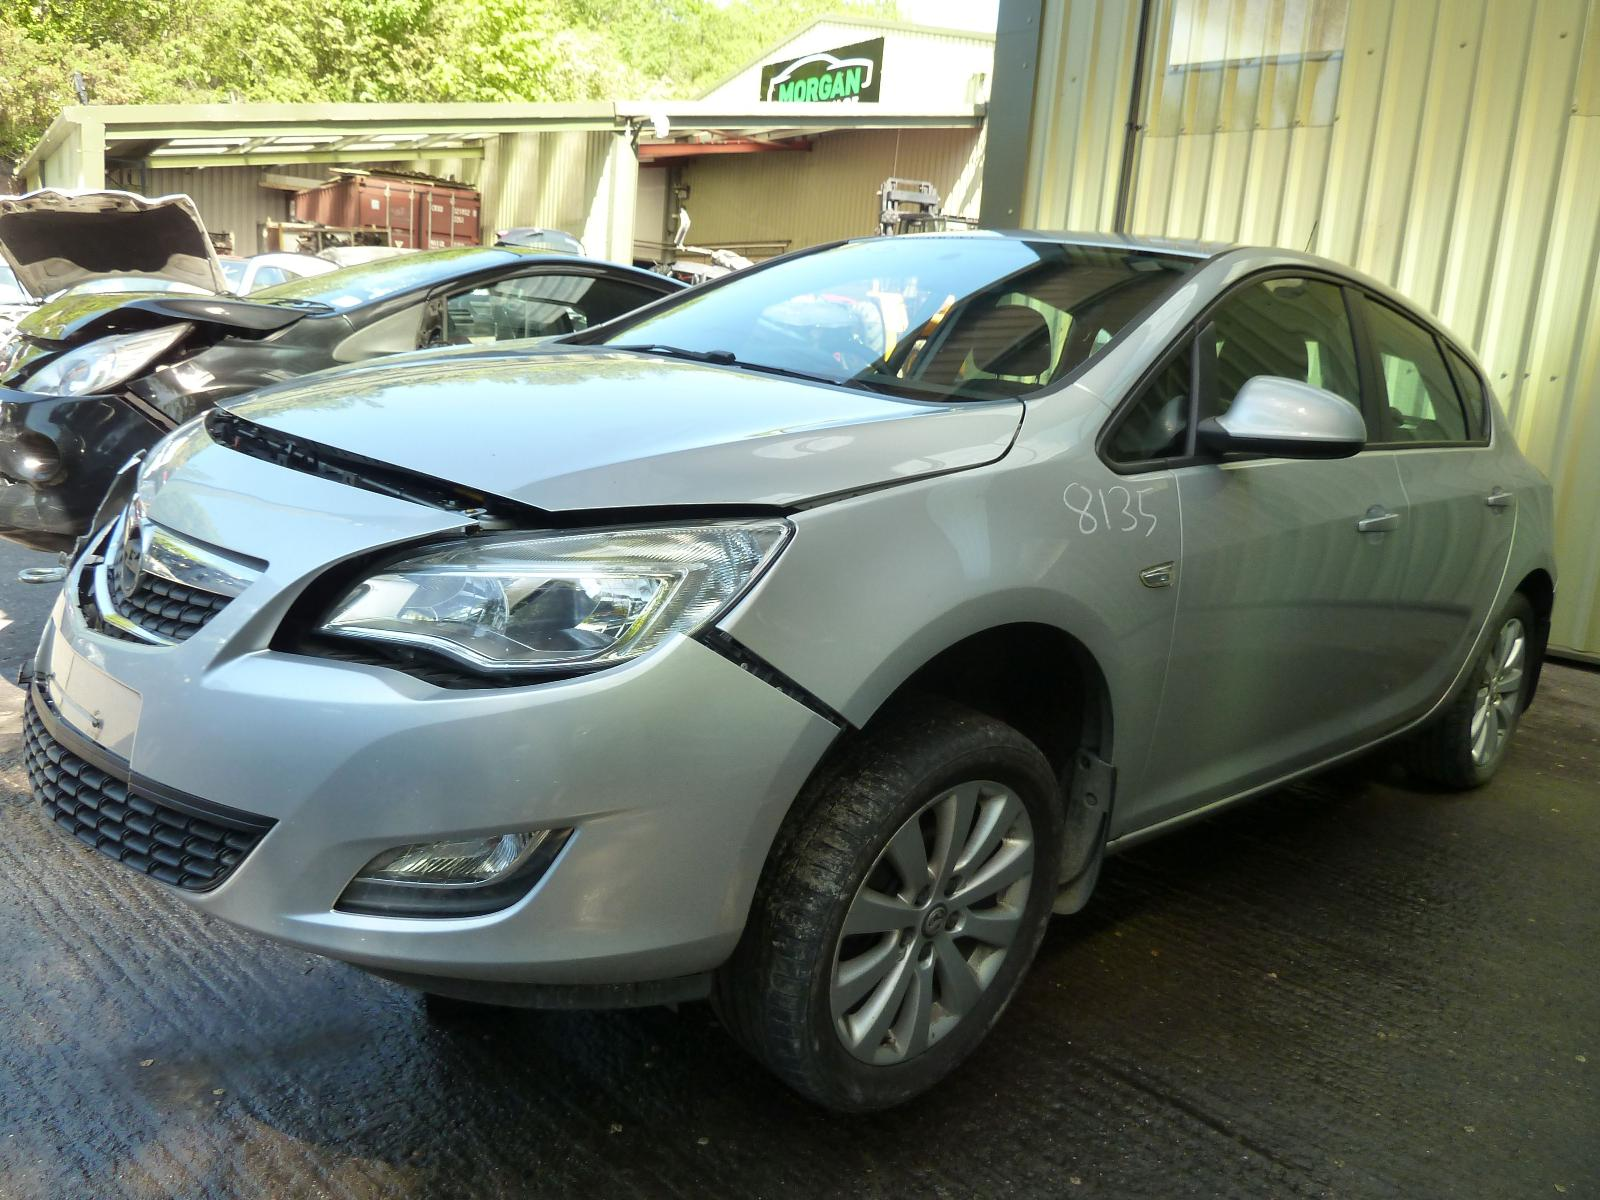 Image for a VAUXHALL ASTRA 2010 5 Door Hatchback